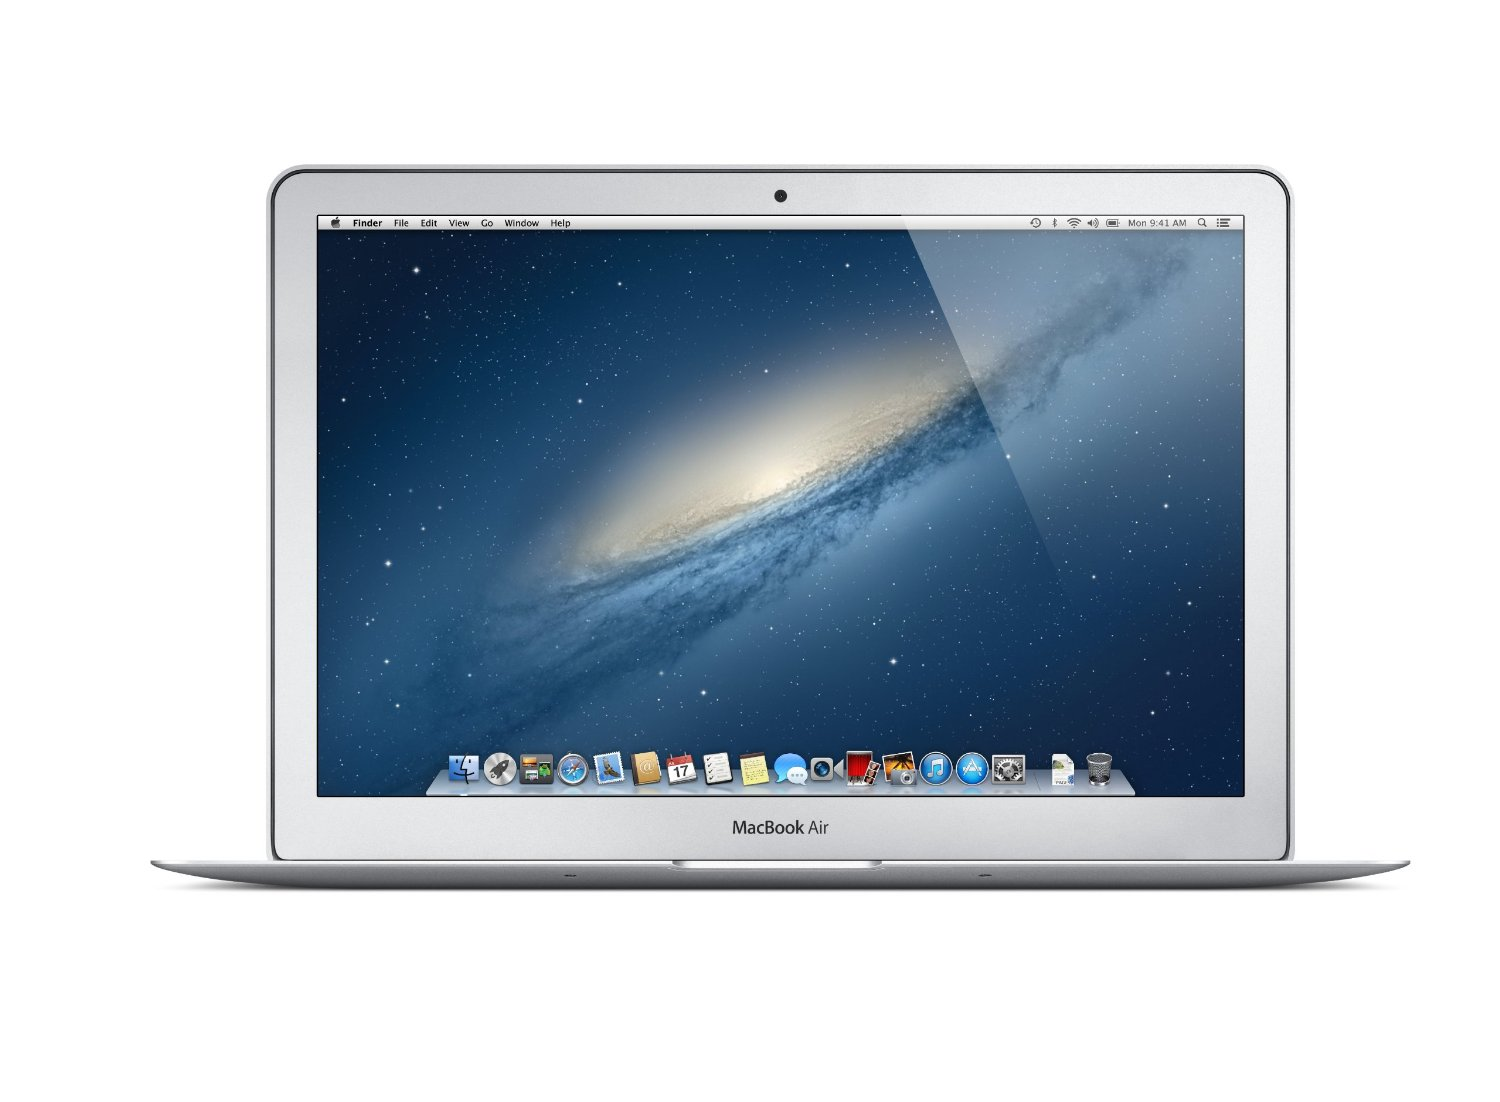 apple macbook air md761ll a 2013 review rating hardware. Black Bedroom Furniture Sets. Home Design Ideas